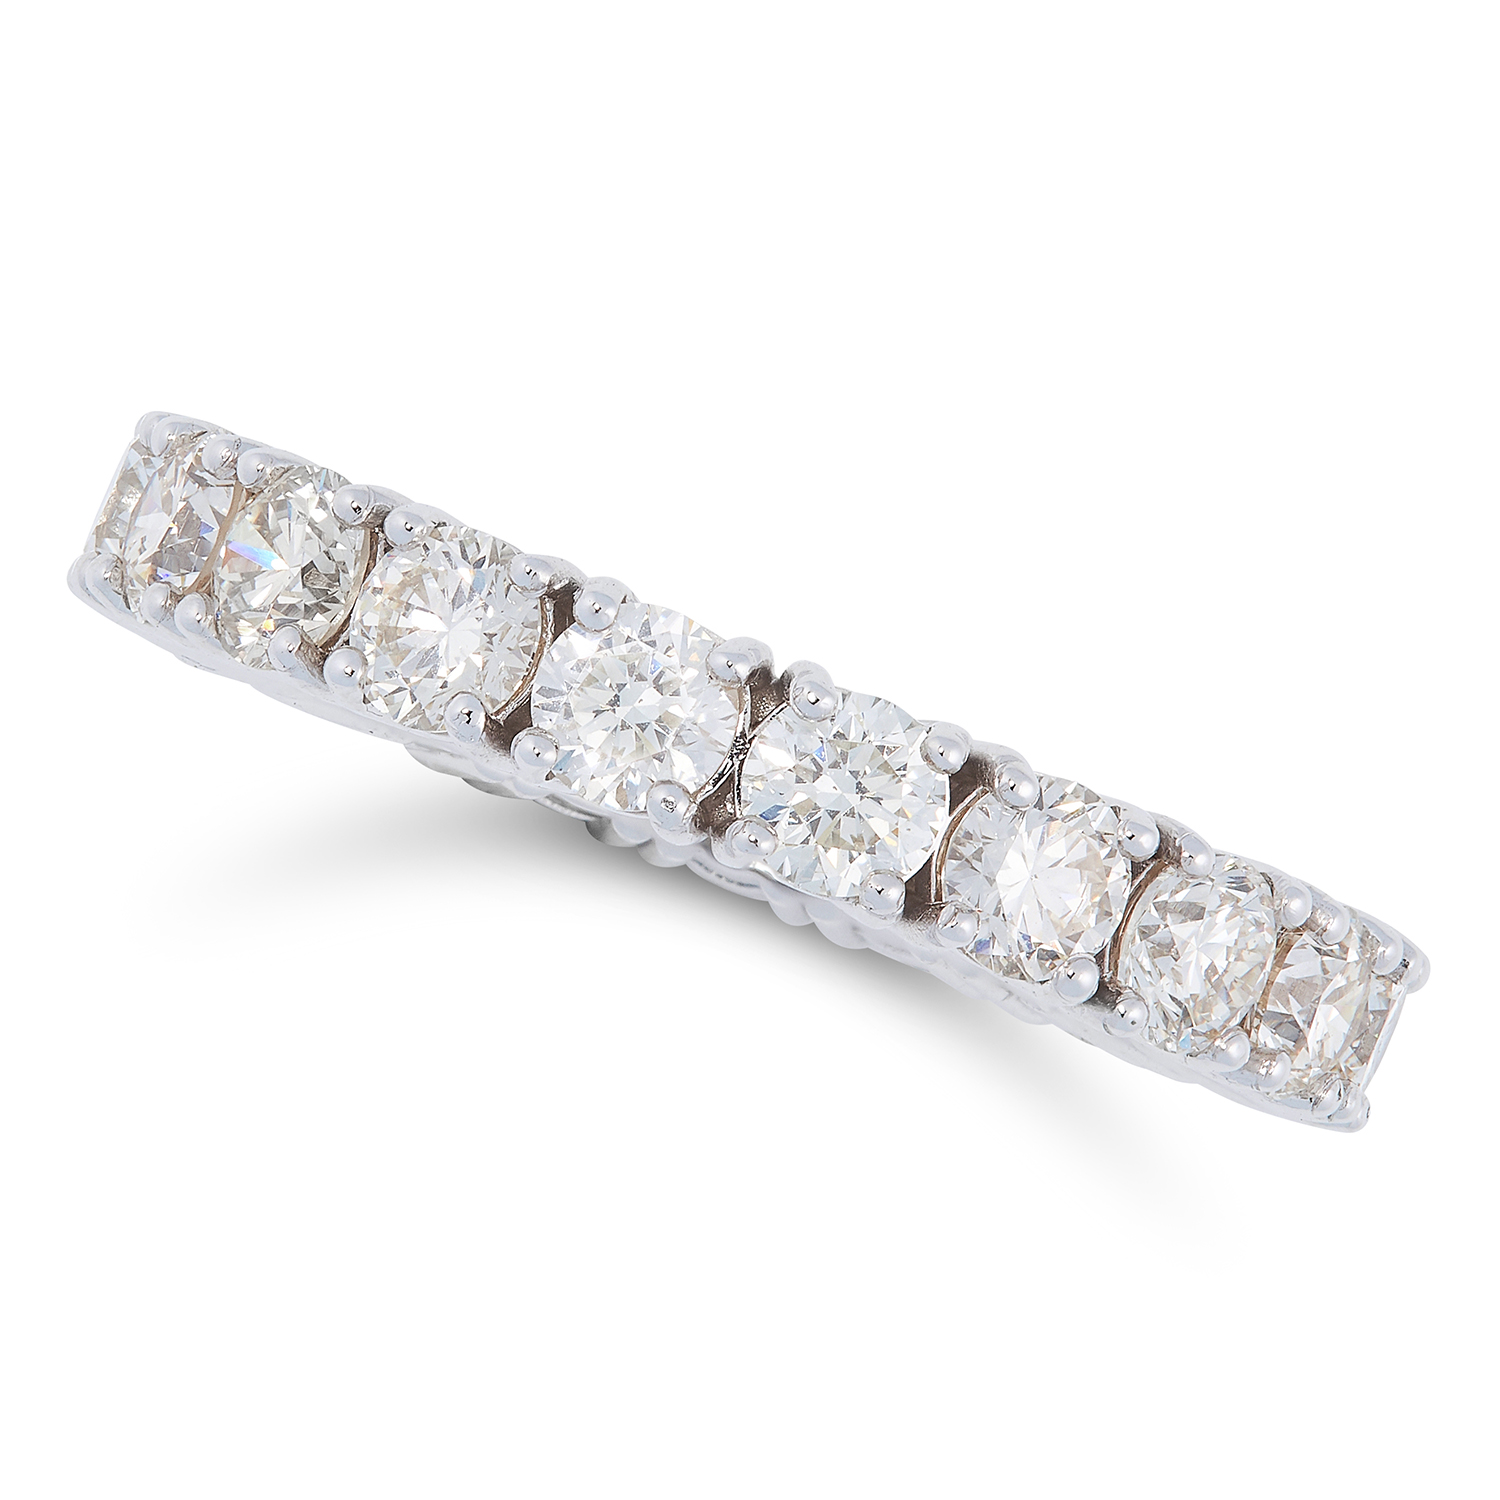 Los 67 - A 3.18 CARAT DIAMOND ETERNITY RING designed as a full eternity ring set with 3.18 carats of round